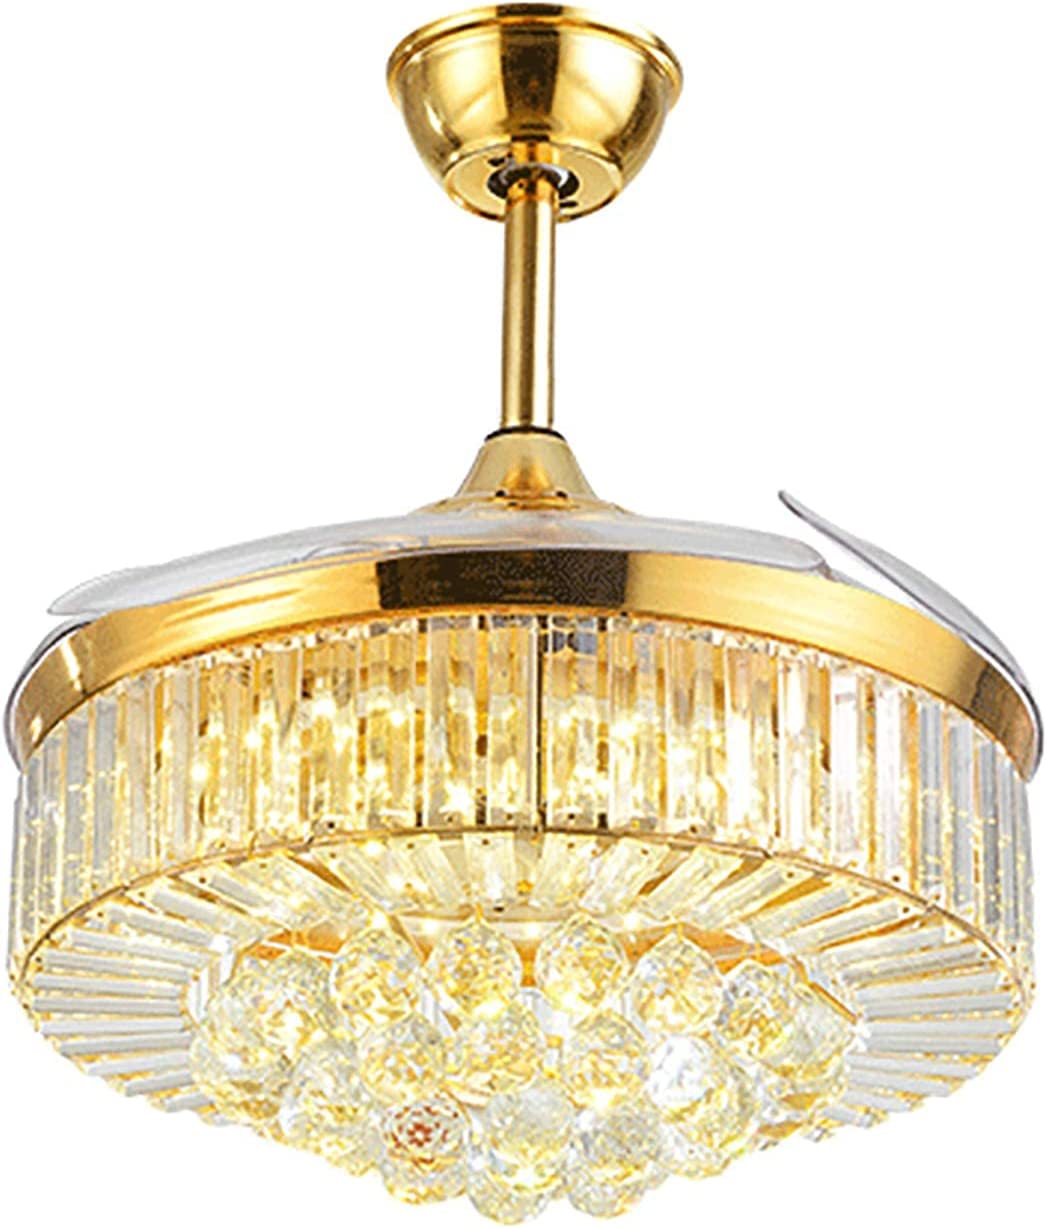 Shipping included CHOUREN Household Ceiling Fan with Dimmable Light Modern Crystal Ranking integrated 1st place